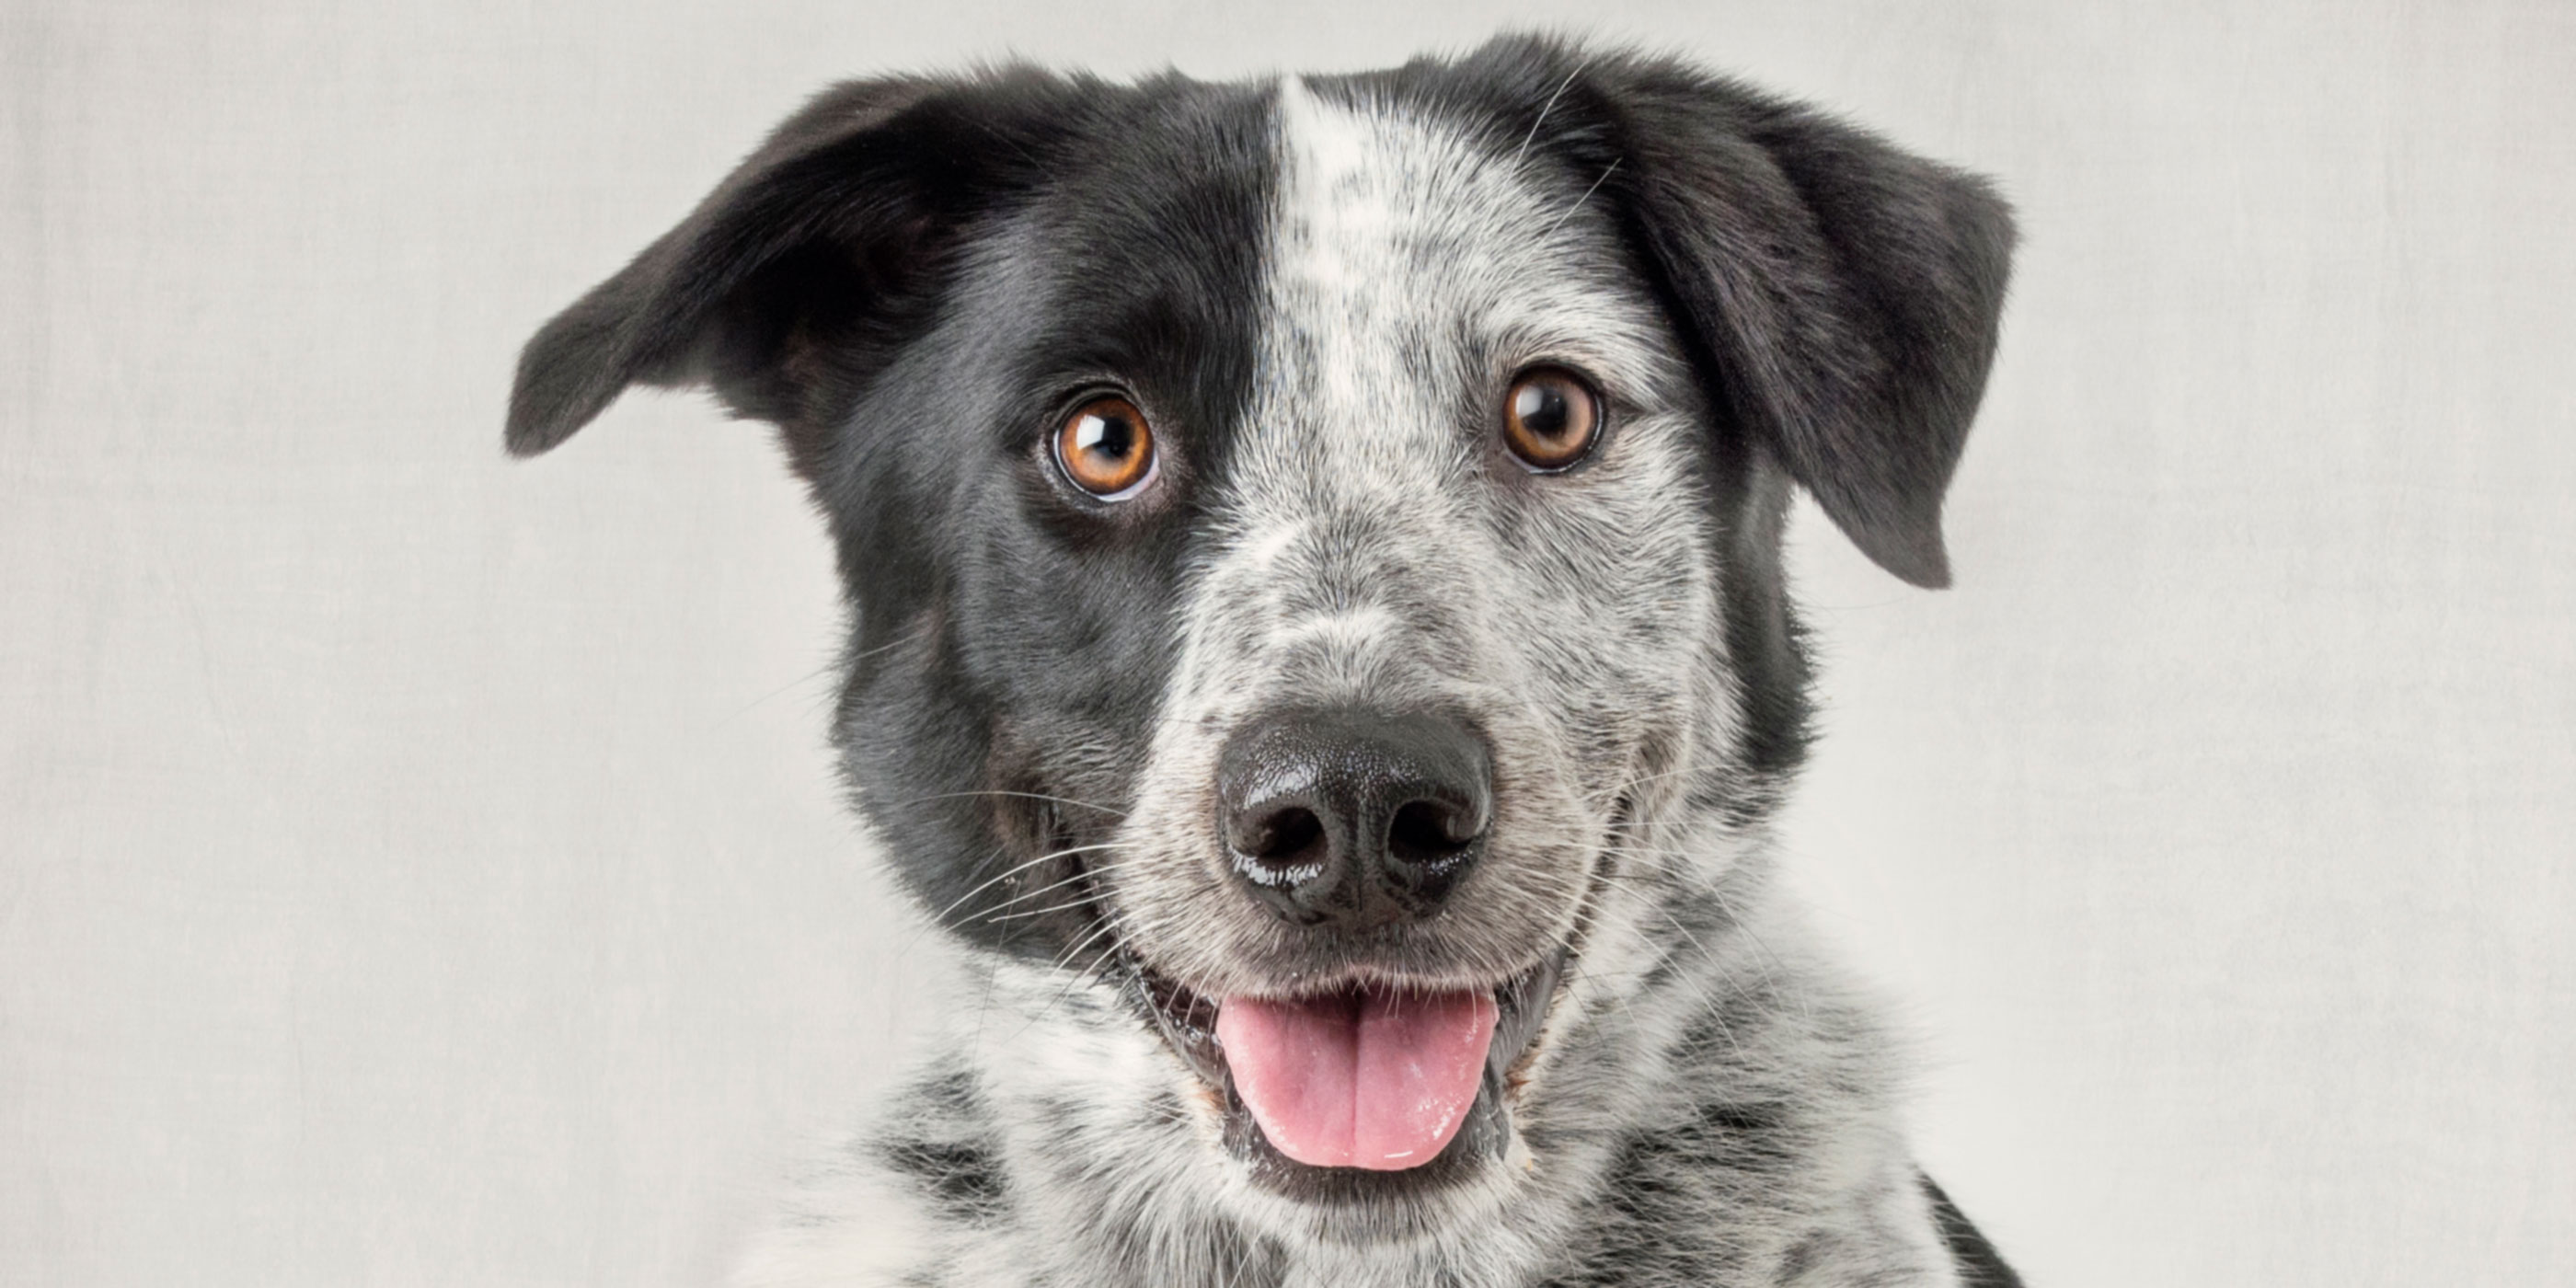 smiling faced black and white cattle dog cross